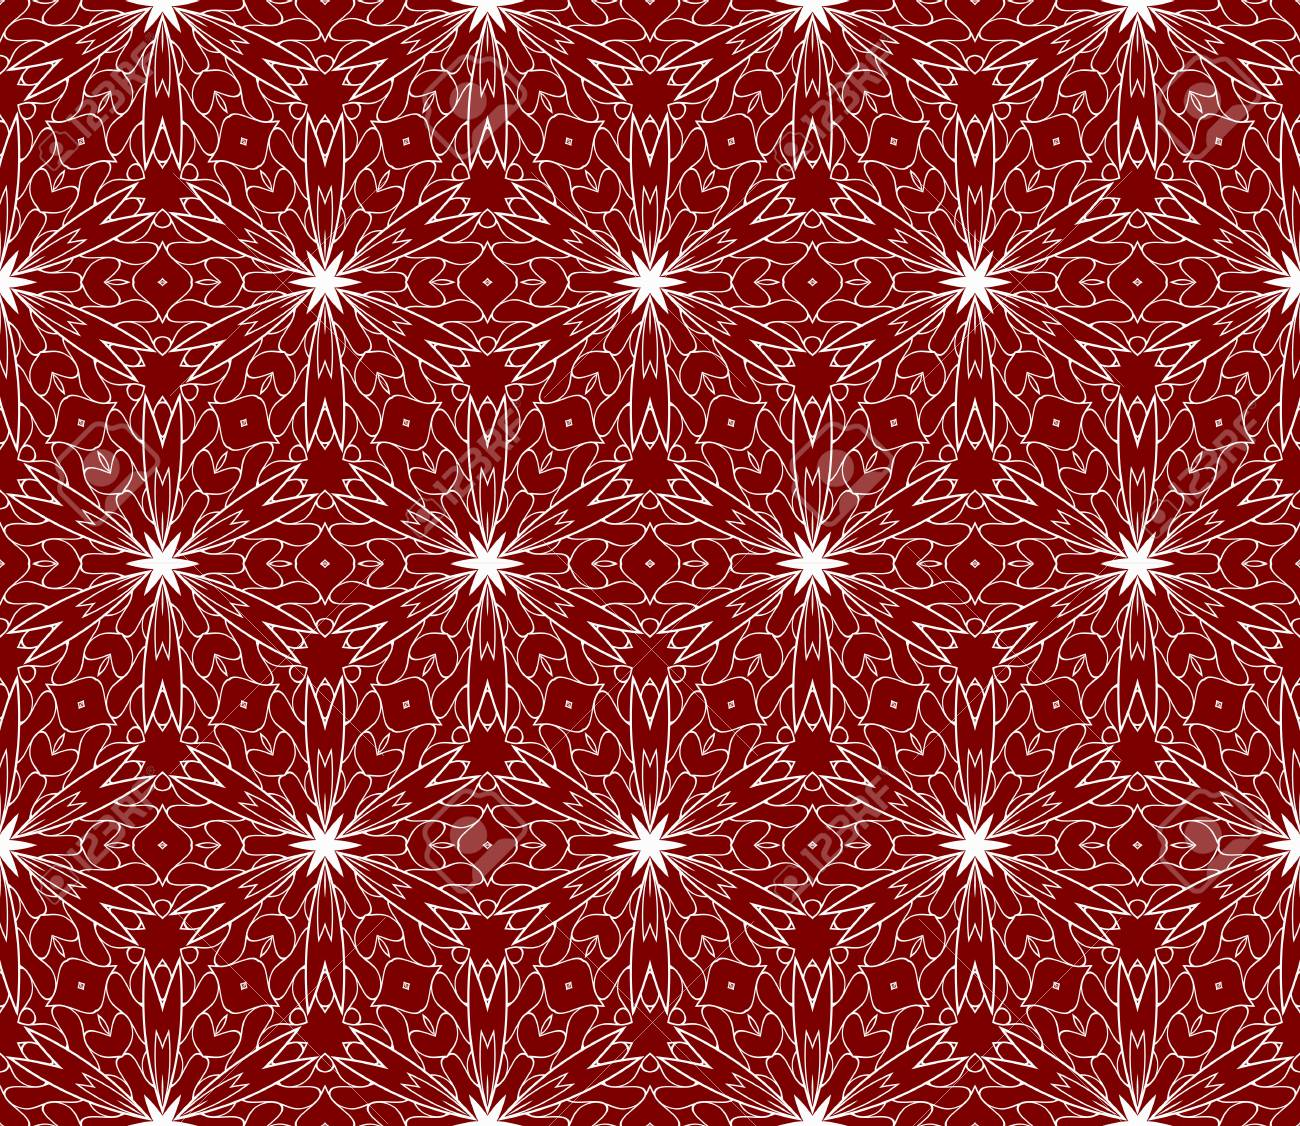 floral lace ornament seamless patterns in arabian style vector